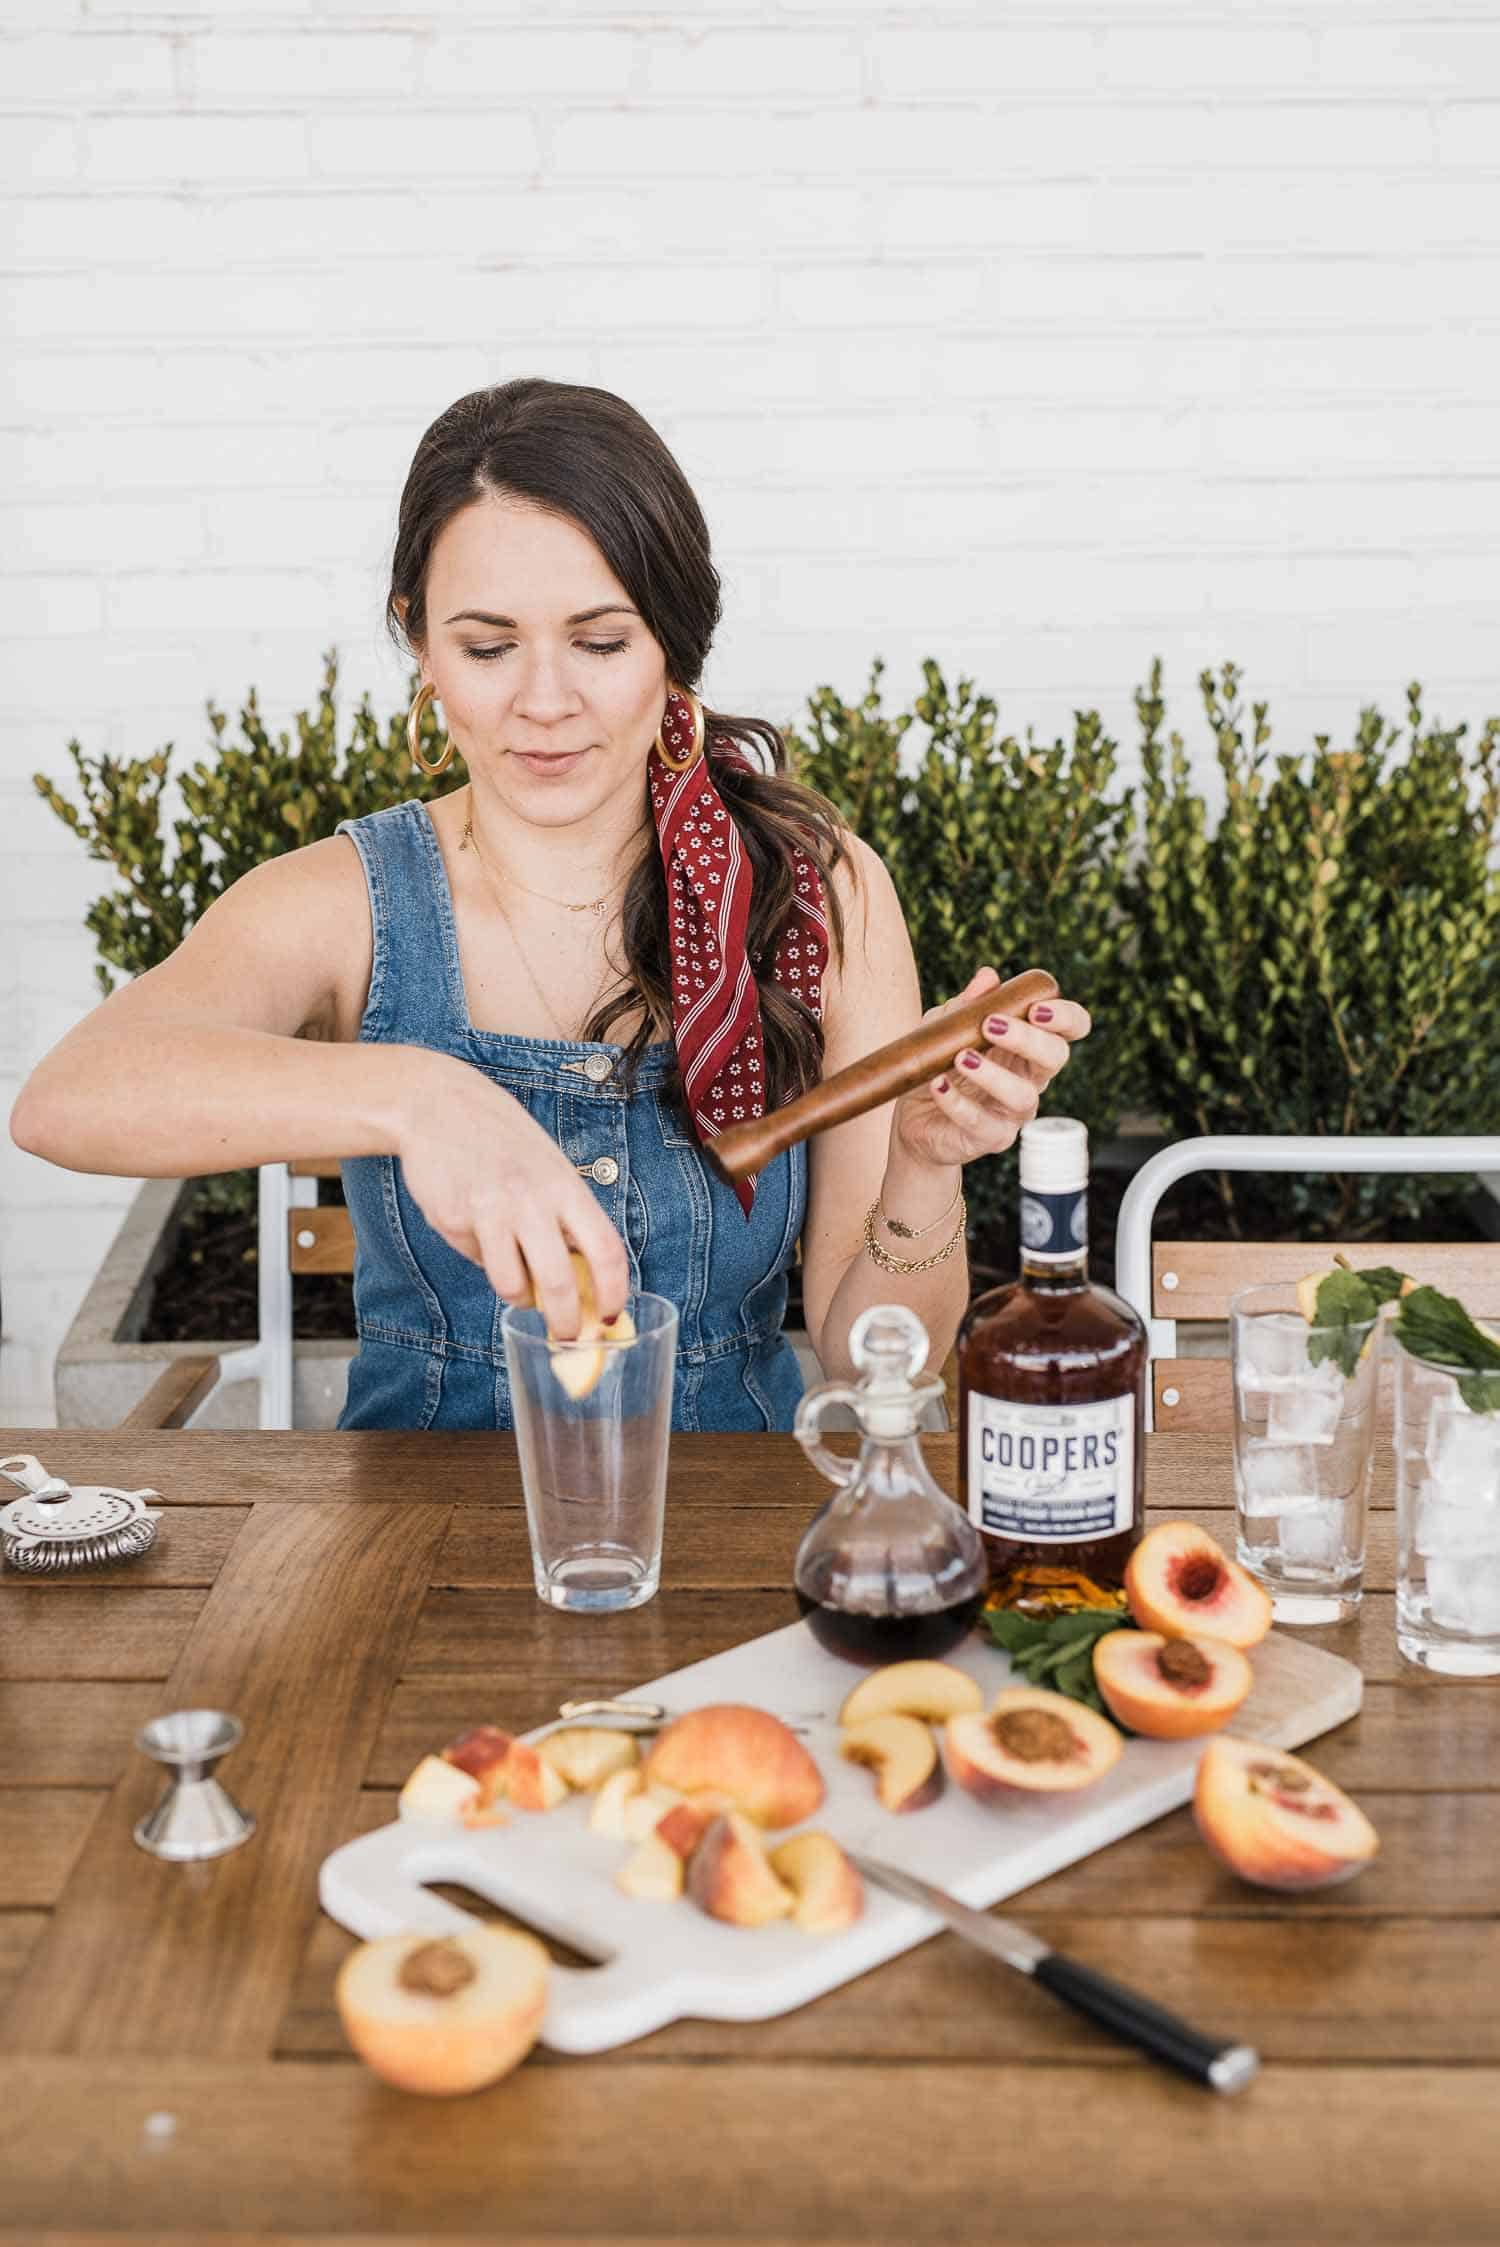 How To Make A Peach Mint Smash Cocktail With Coopers' Craft Bourbon